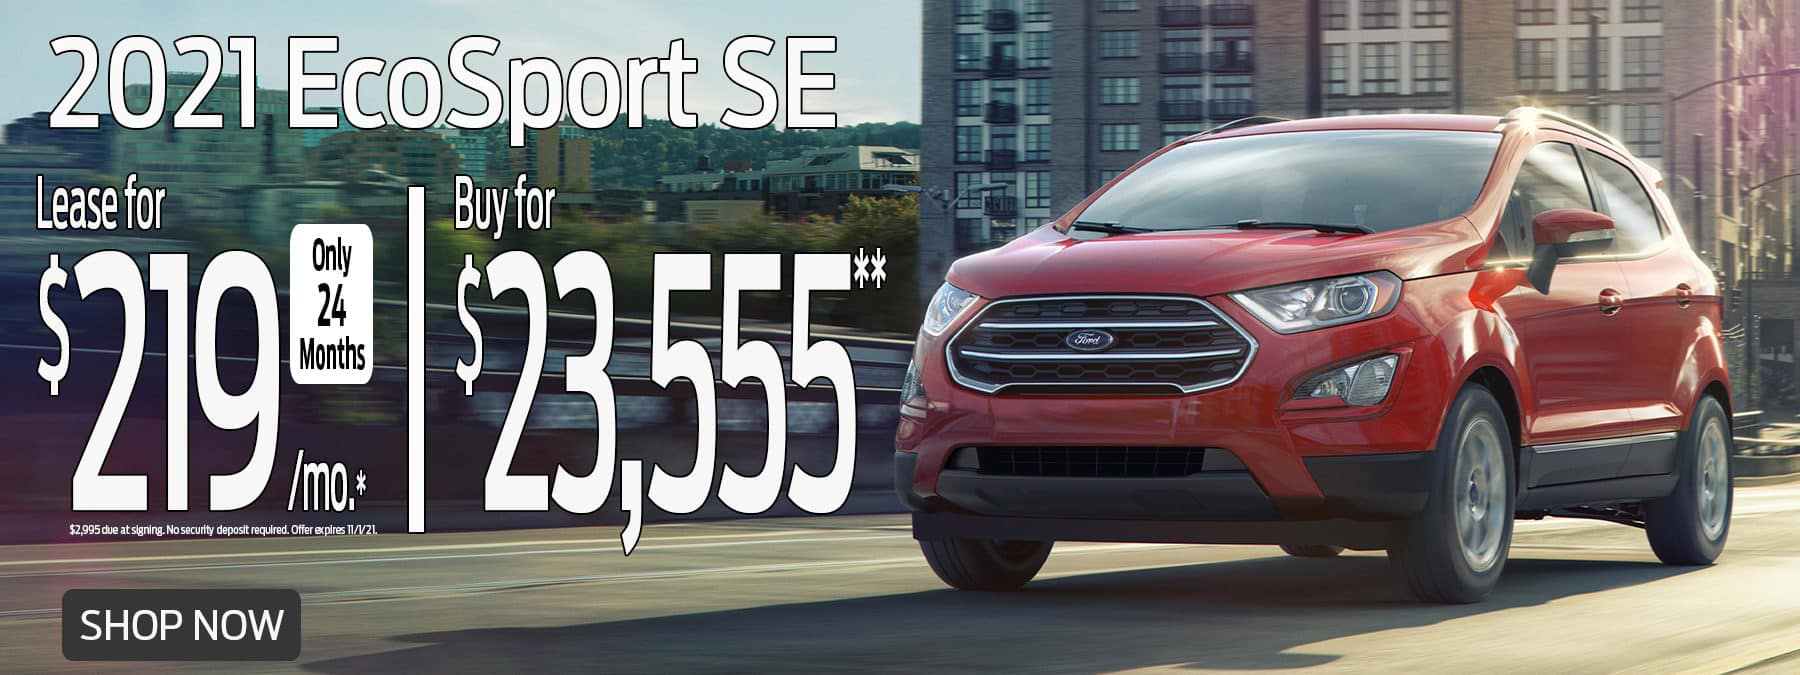 2021 EcoSport Special Lease Offer